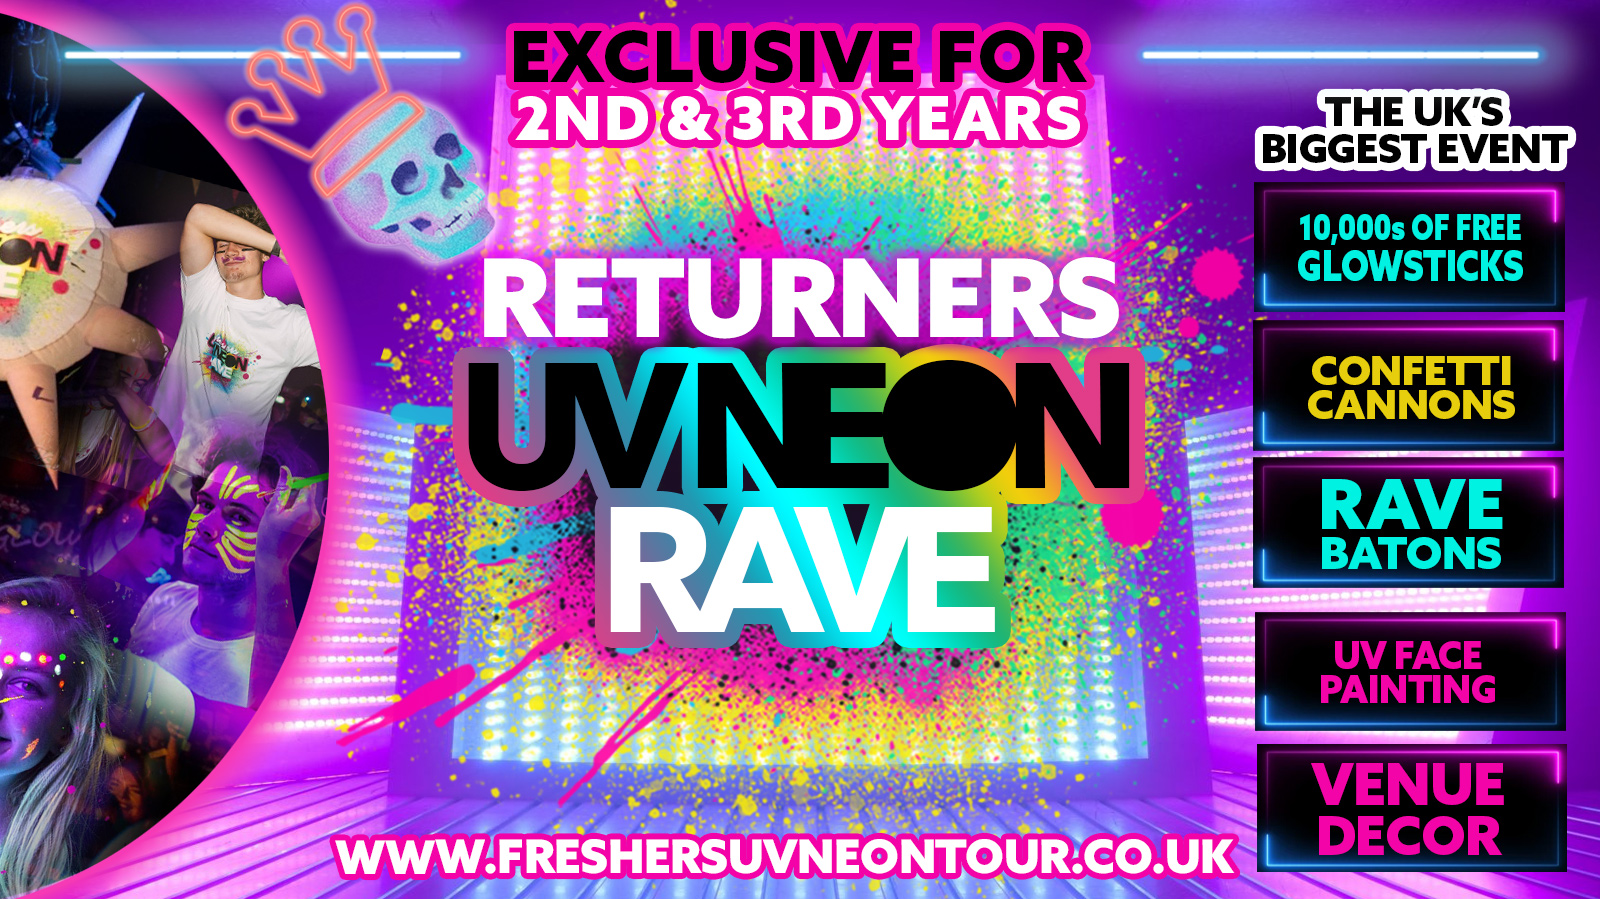 Leeds Returners UV Neon Rave   Exclusive for 2nd & 3rd Years